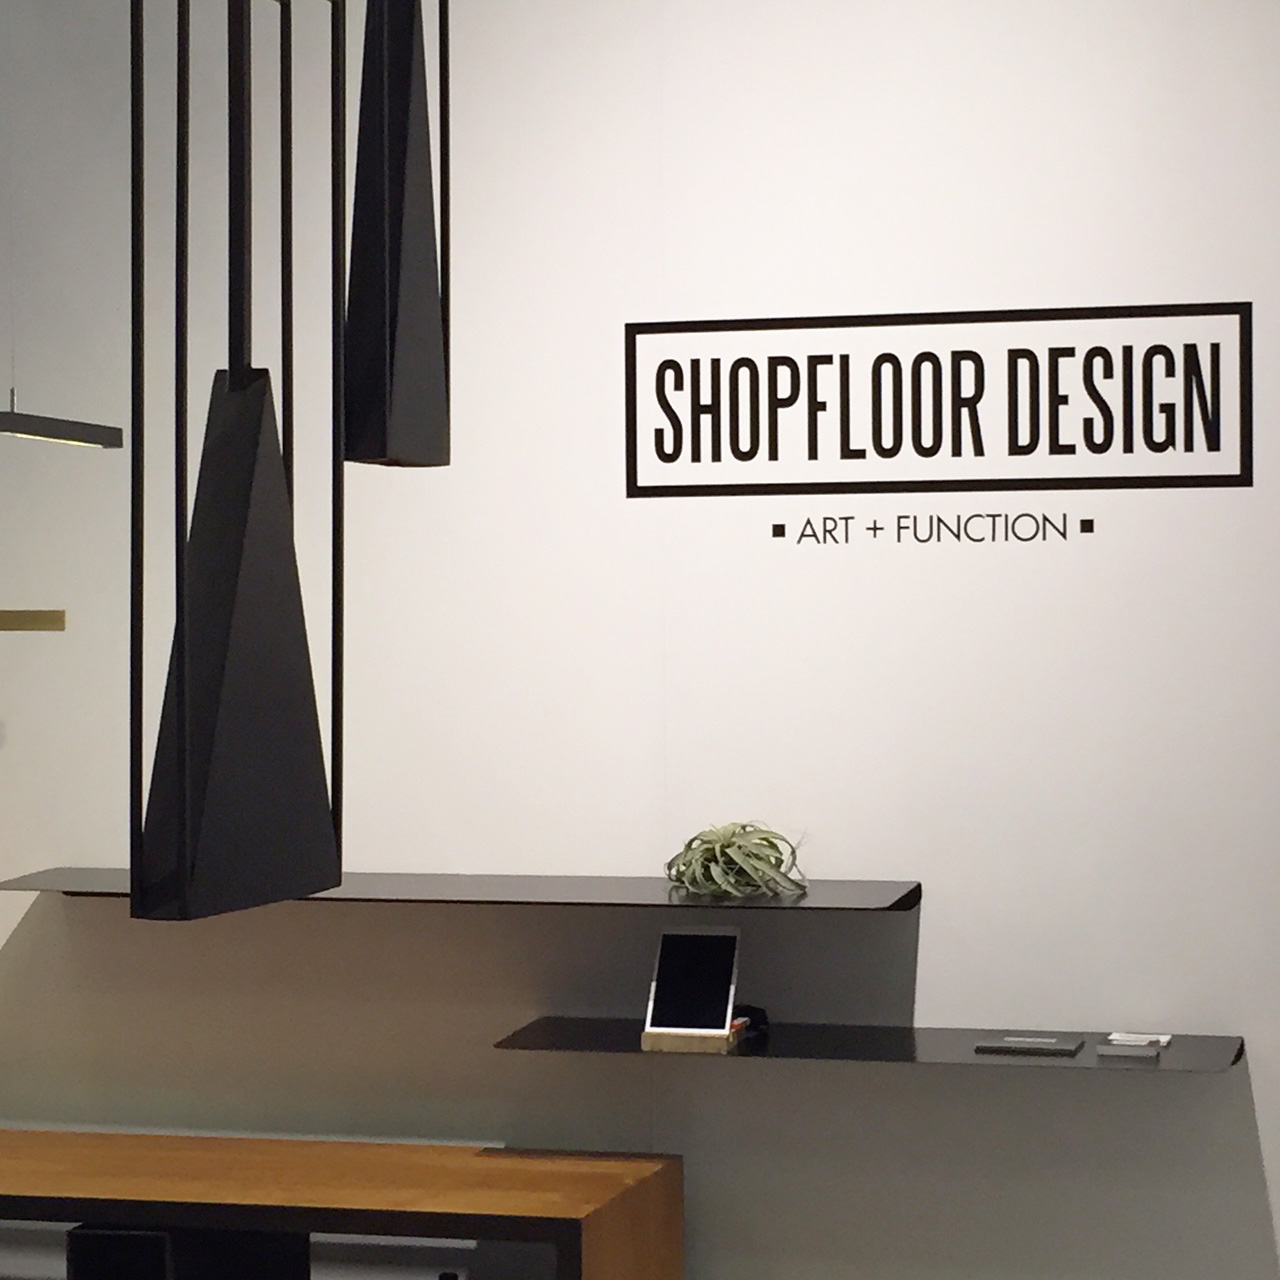 ShopFloor Design at WestEdge 2015